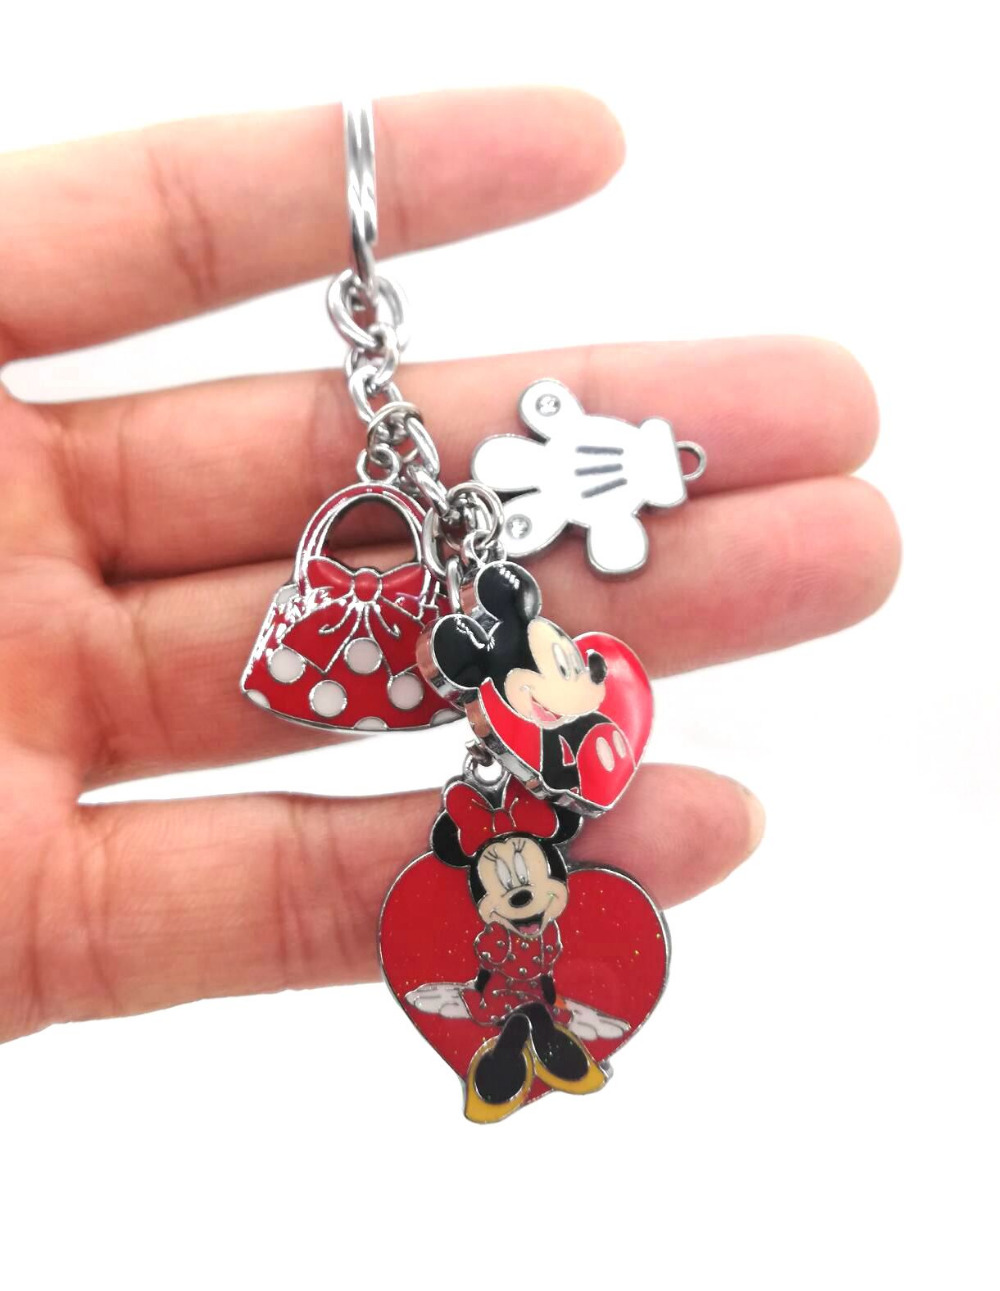 New 1 Set  Cartoon Mickey Minnie Hand Bag  Keychain  Jewelry Accessories  Key Chains  Pendant  Gifts  Favors LK-52